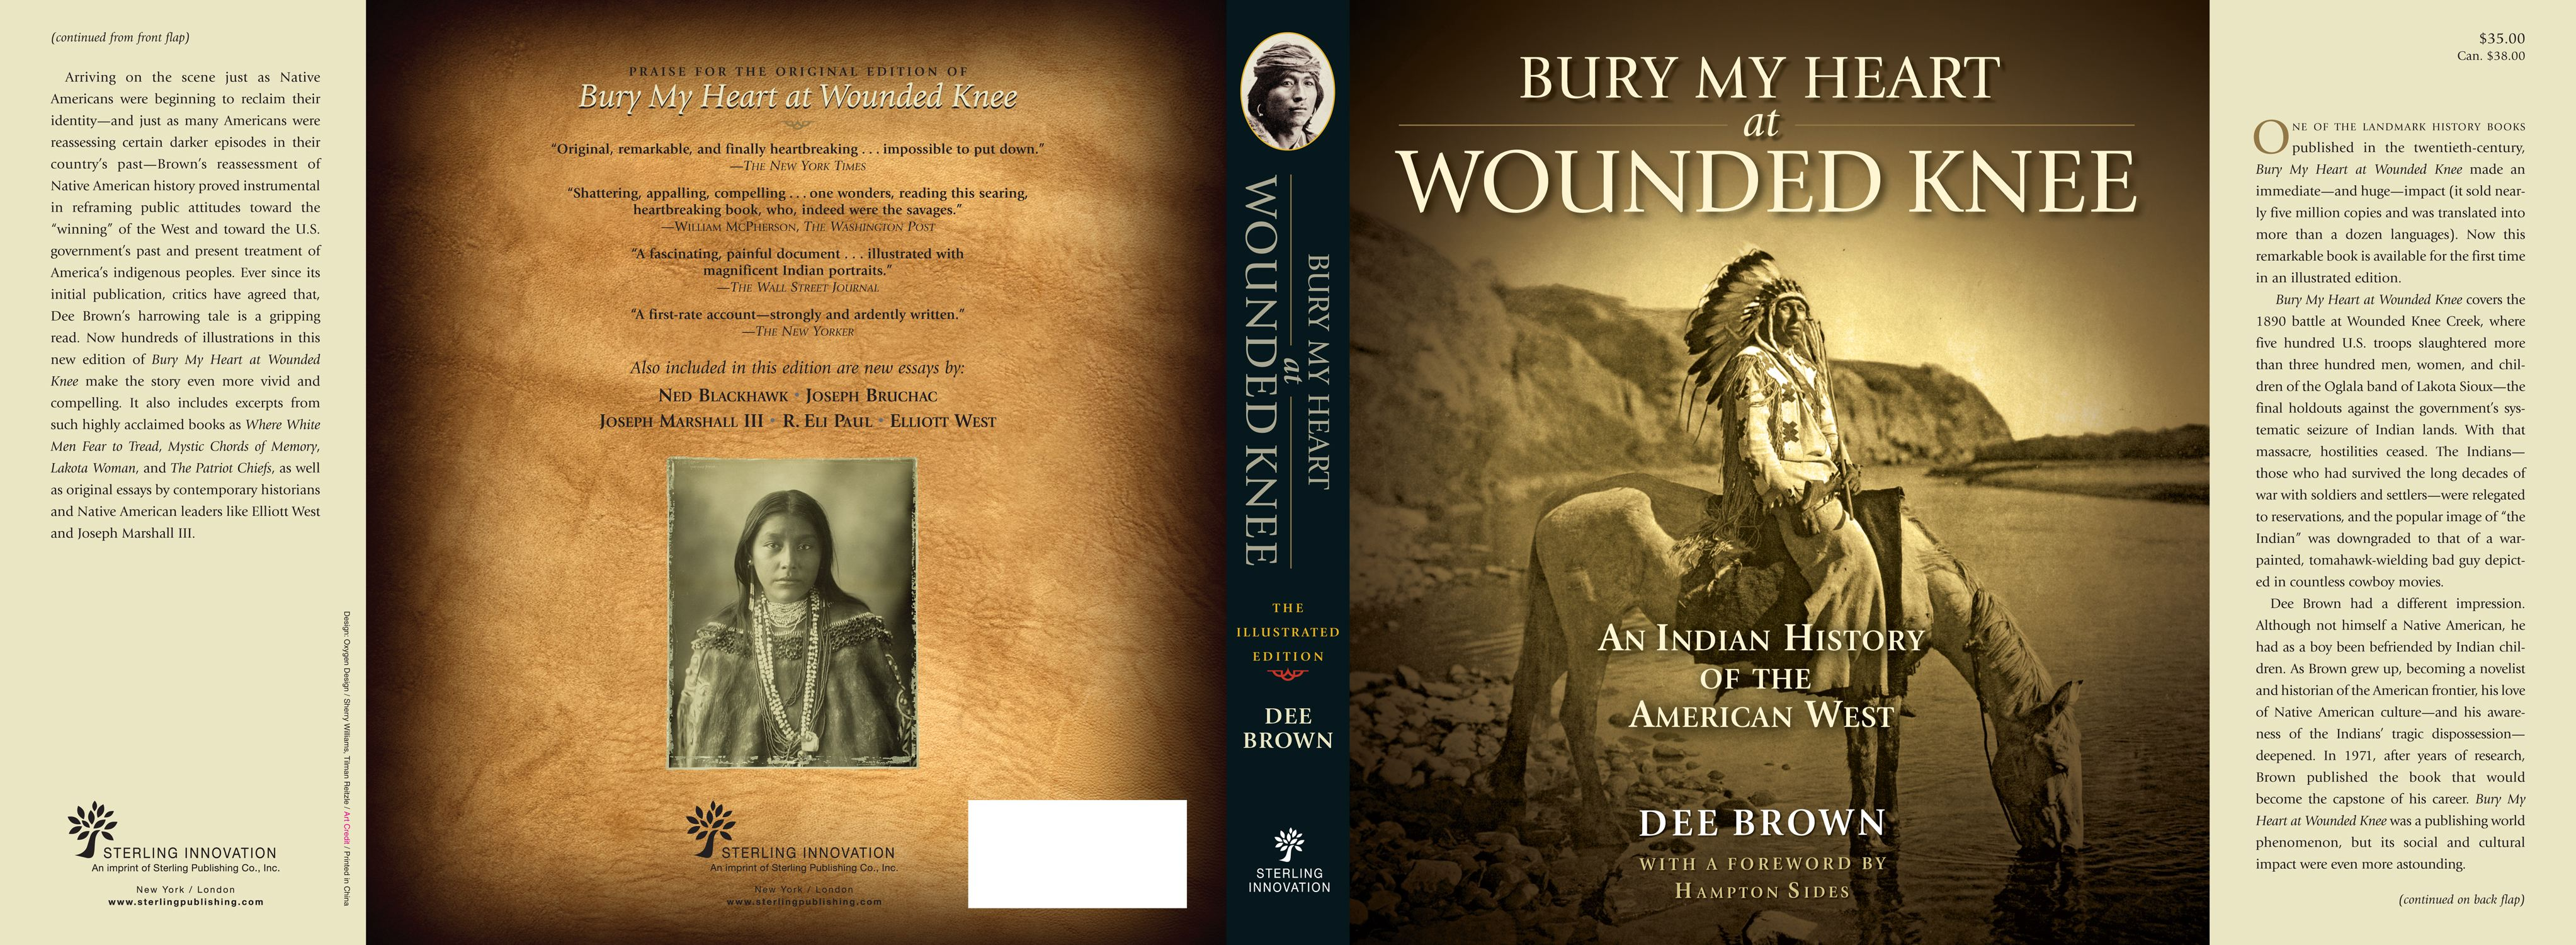 book covers by melissa gerber at com bury my heart at wounded knee art directed the design direction for this title